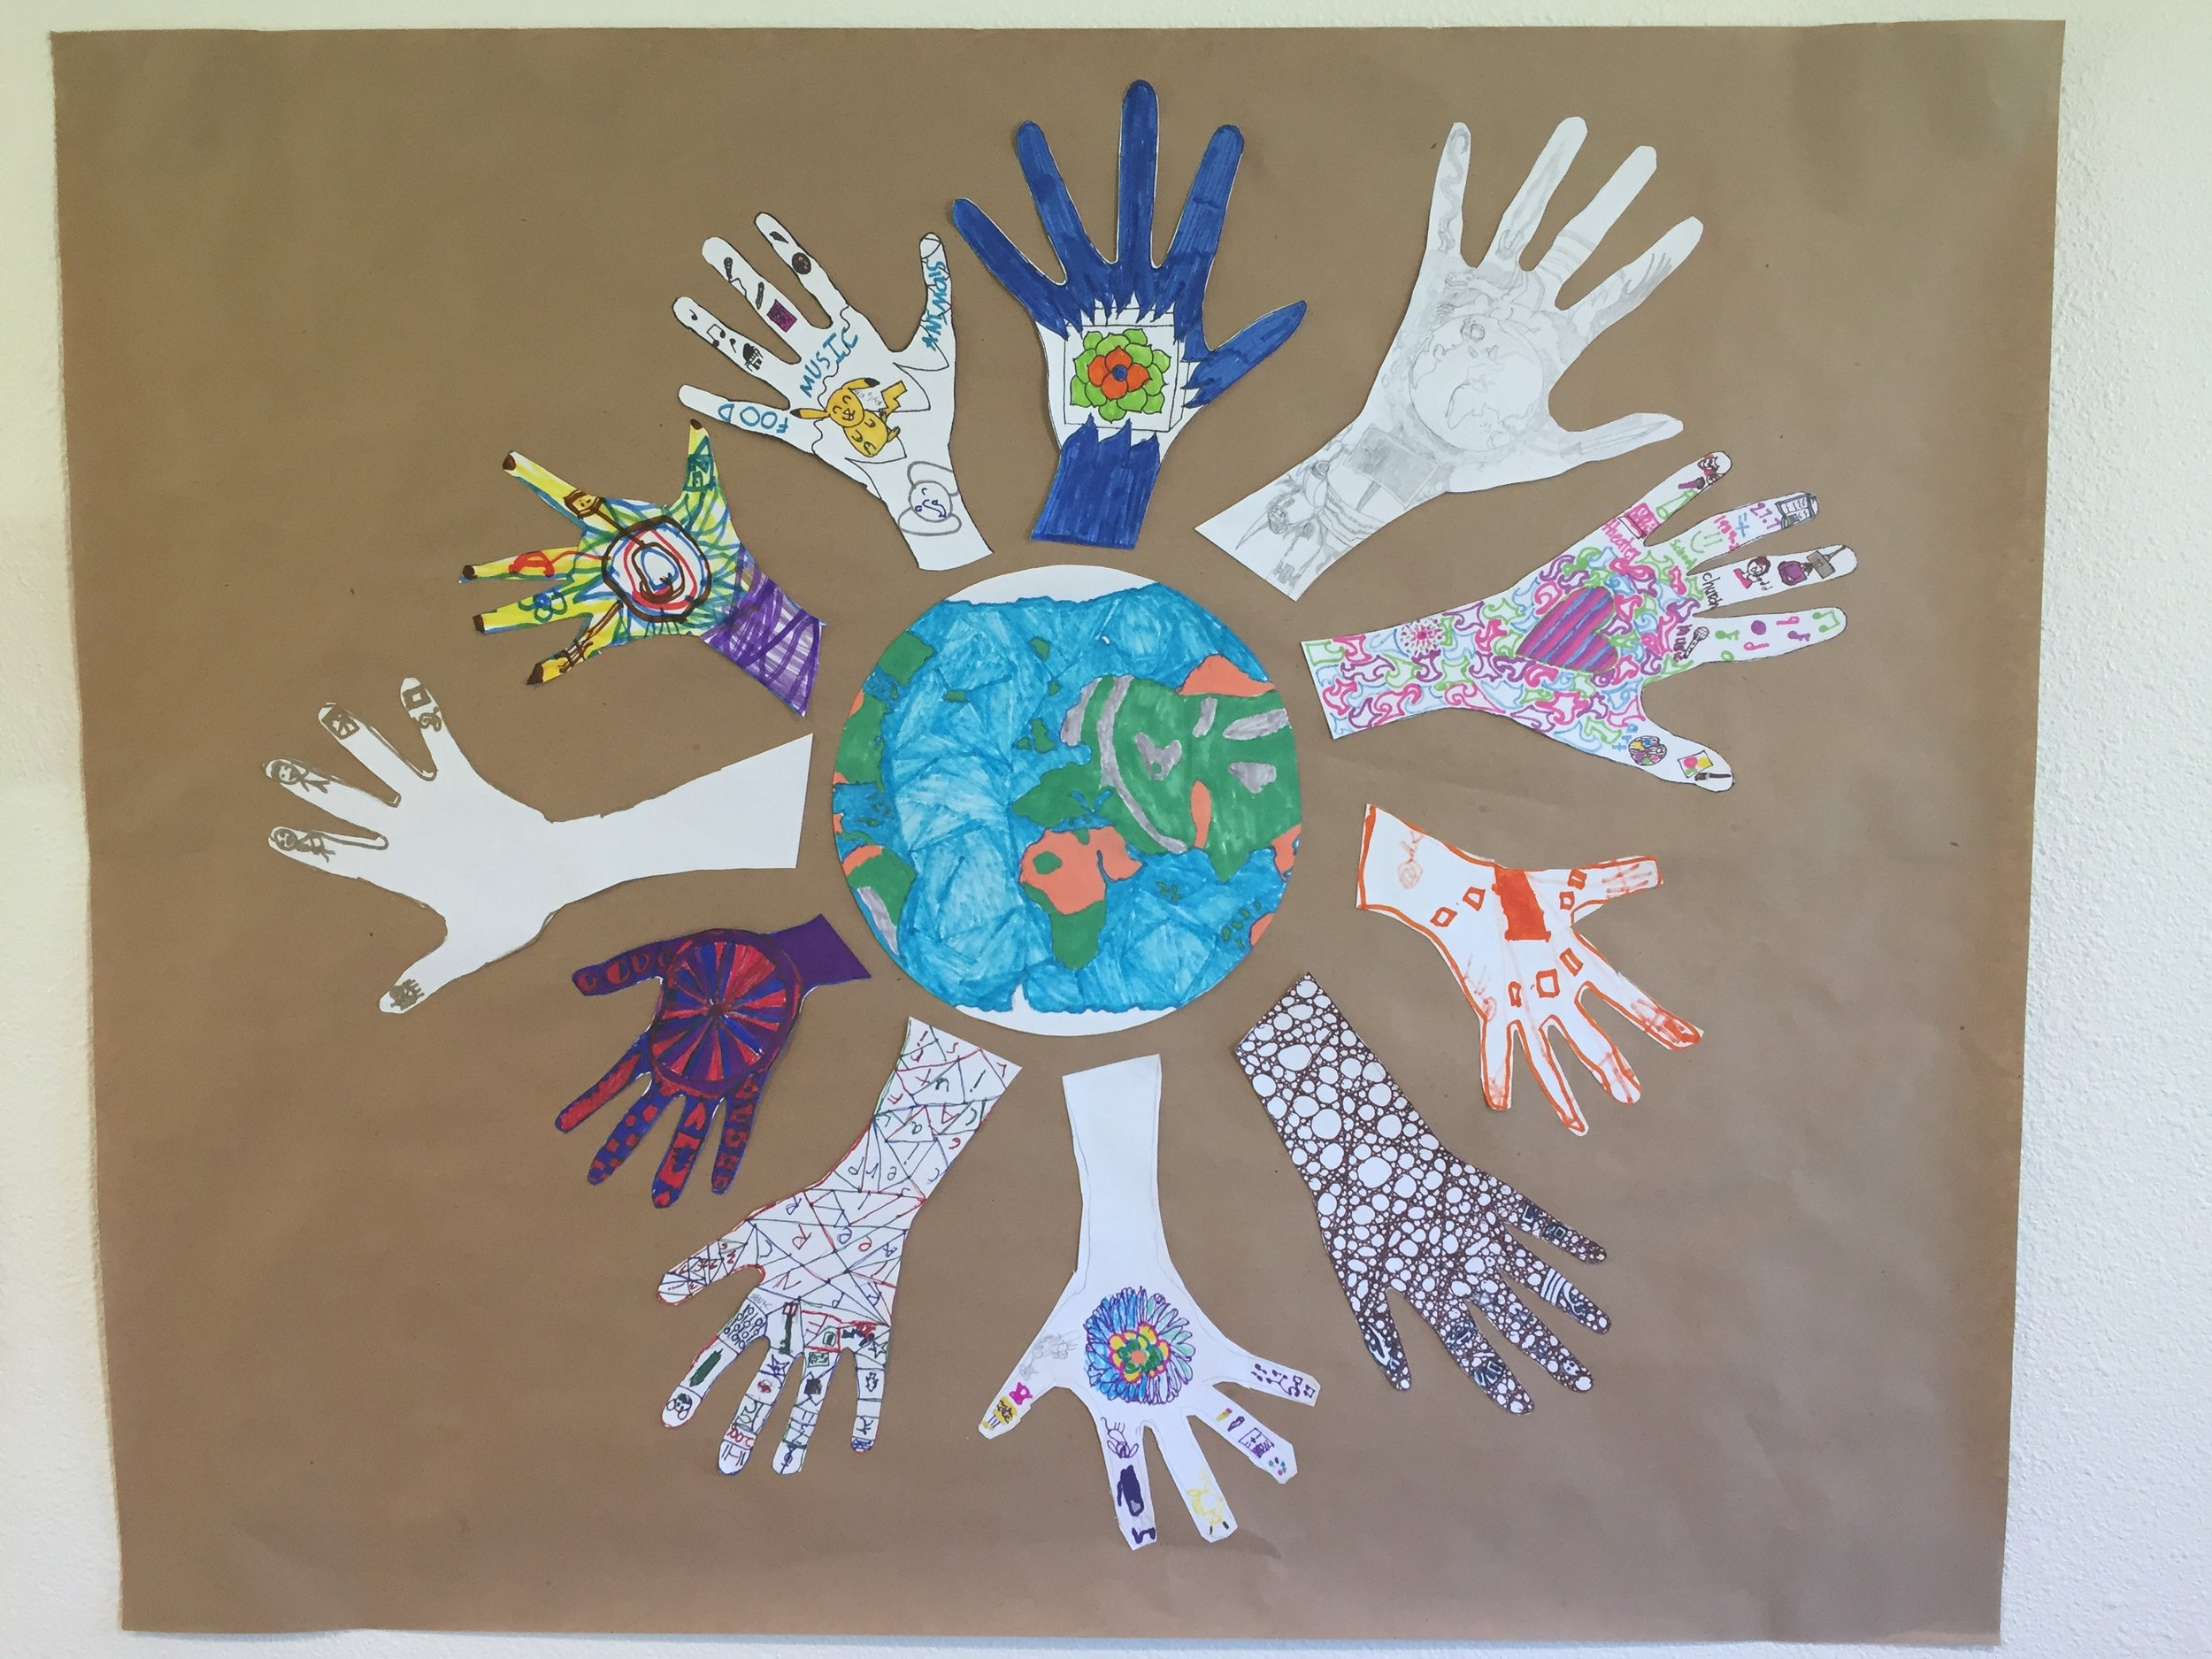 The kids at our Friday School each created a hand that represents them and their personal and family cultures.